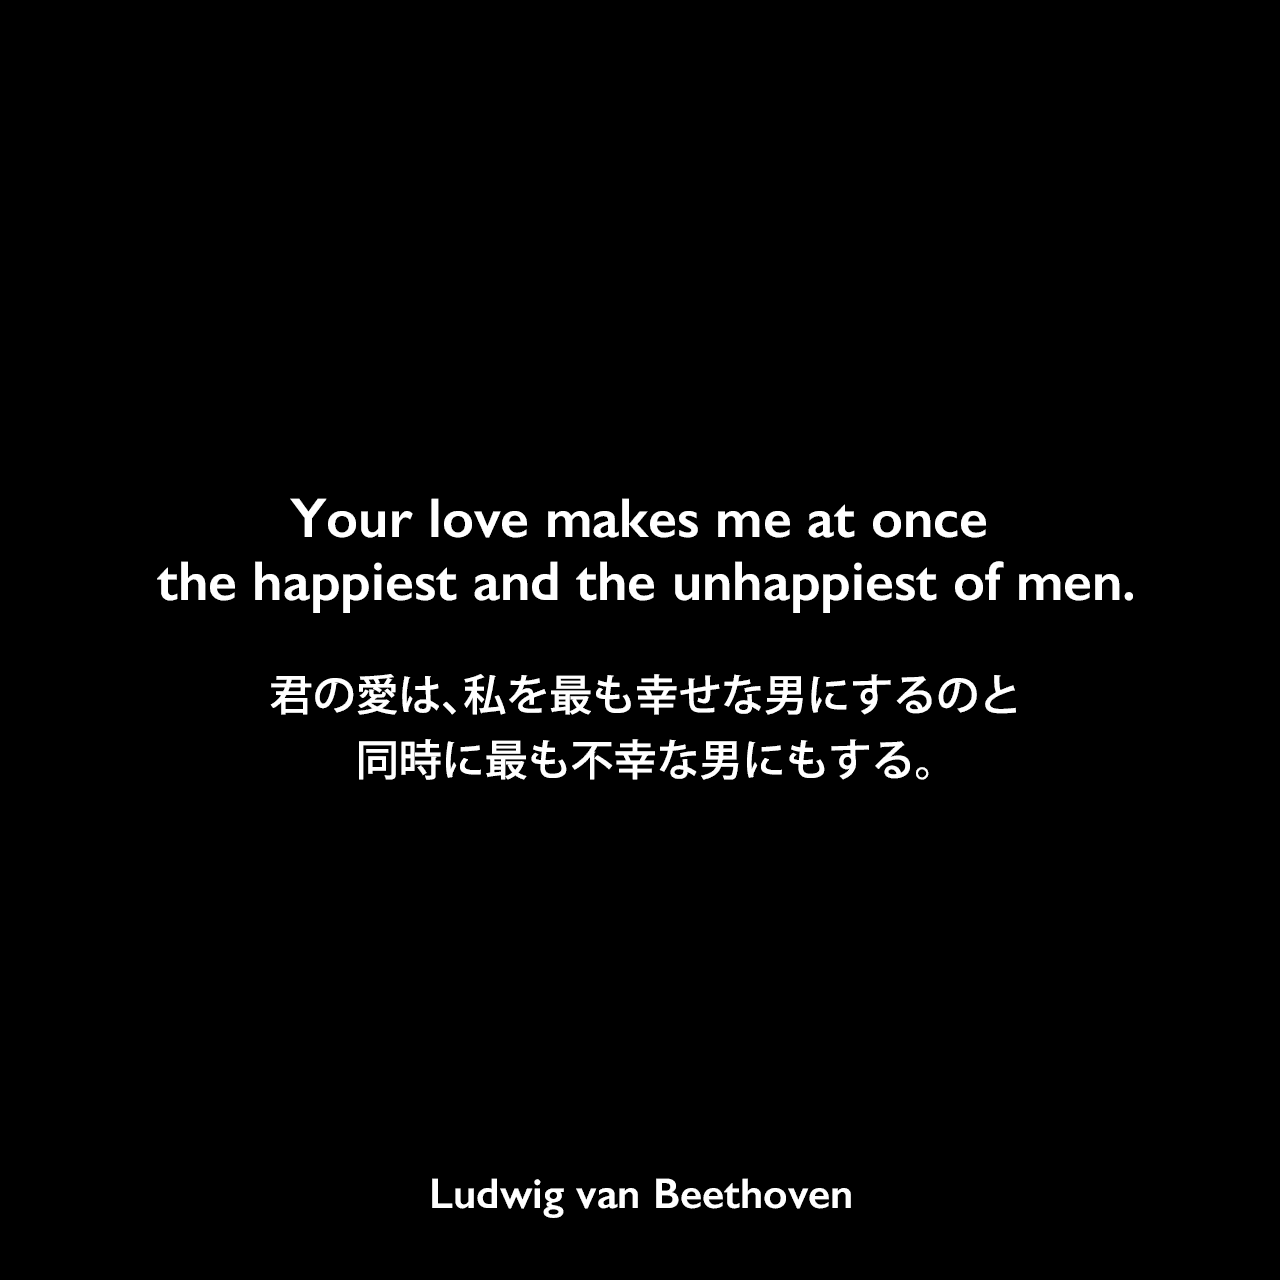 Your love makes me at once the happiest and the unhappiest of men.君の愛は、私を最も幸せな男にするのと同時に最も不幸な男にもする。